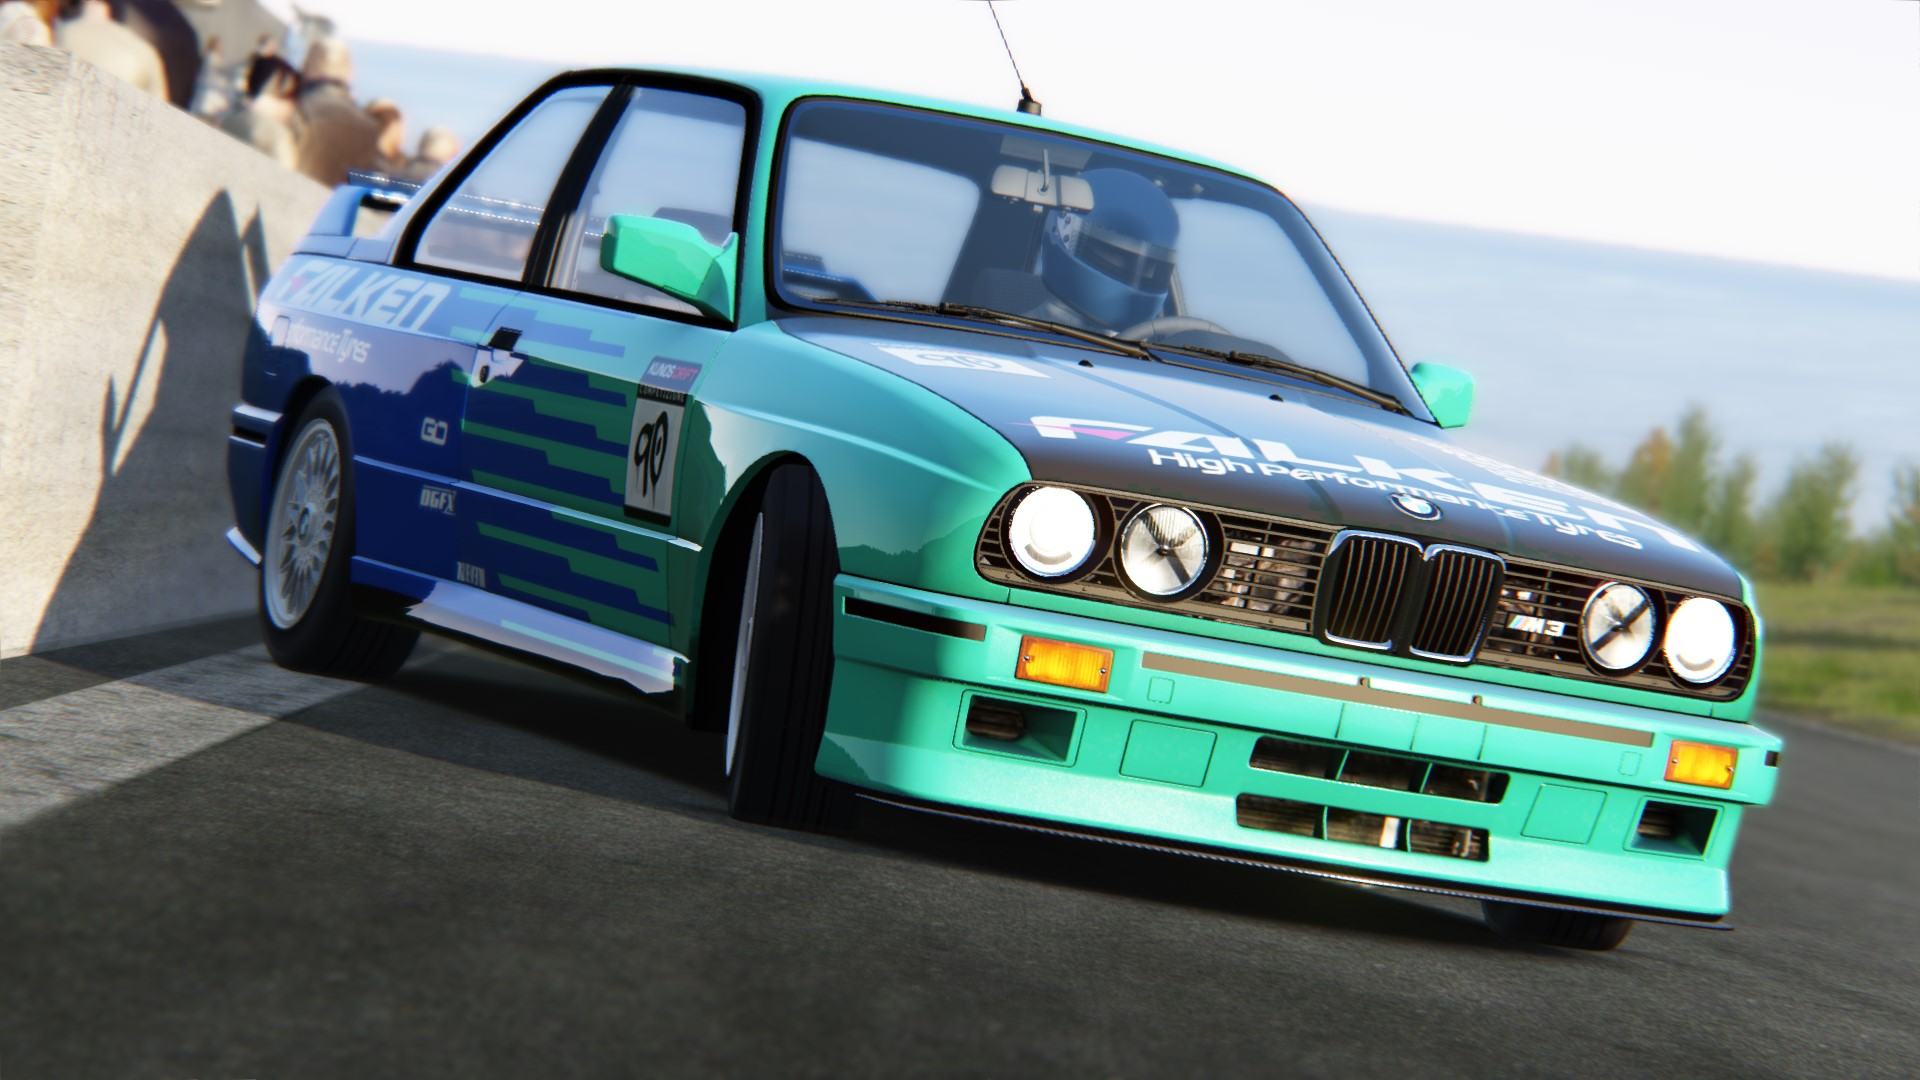 Screenshot_bmw_m3_e30_drift_suzukatwindrift_7-4-116-23-55-29.jpg